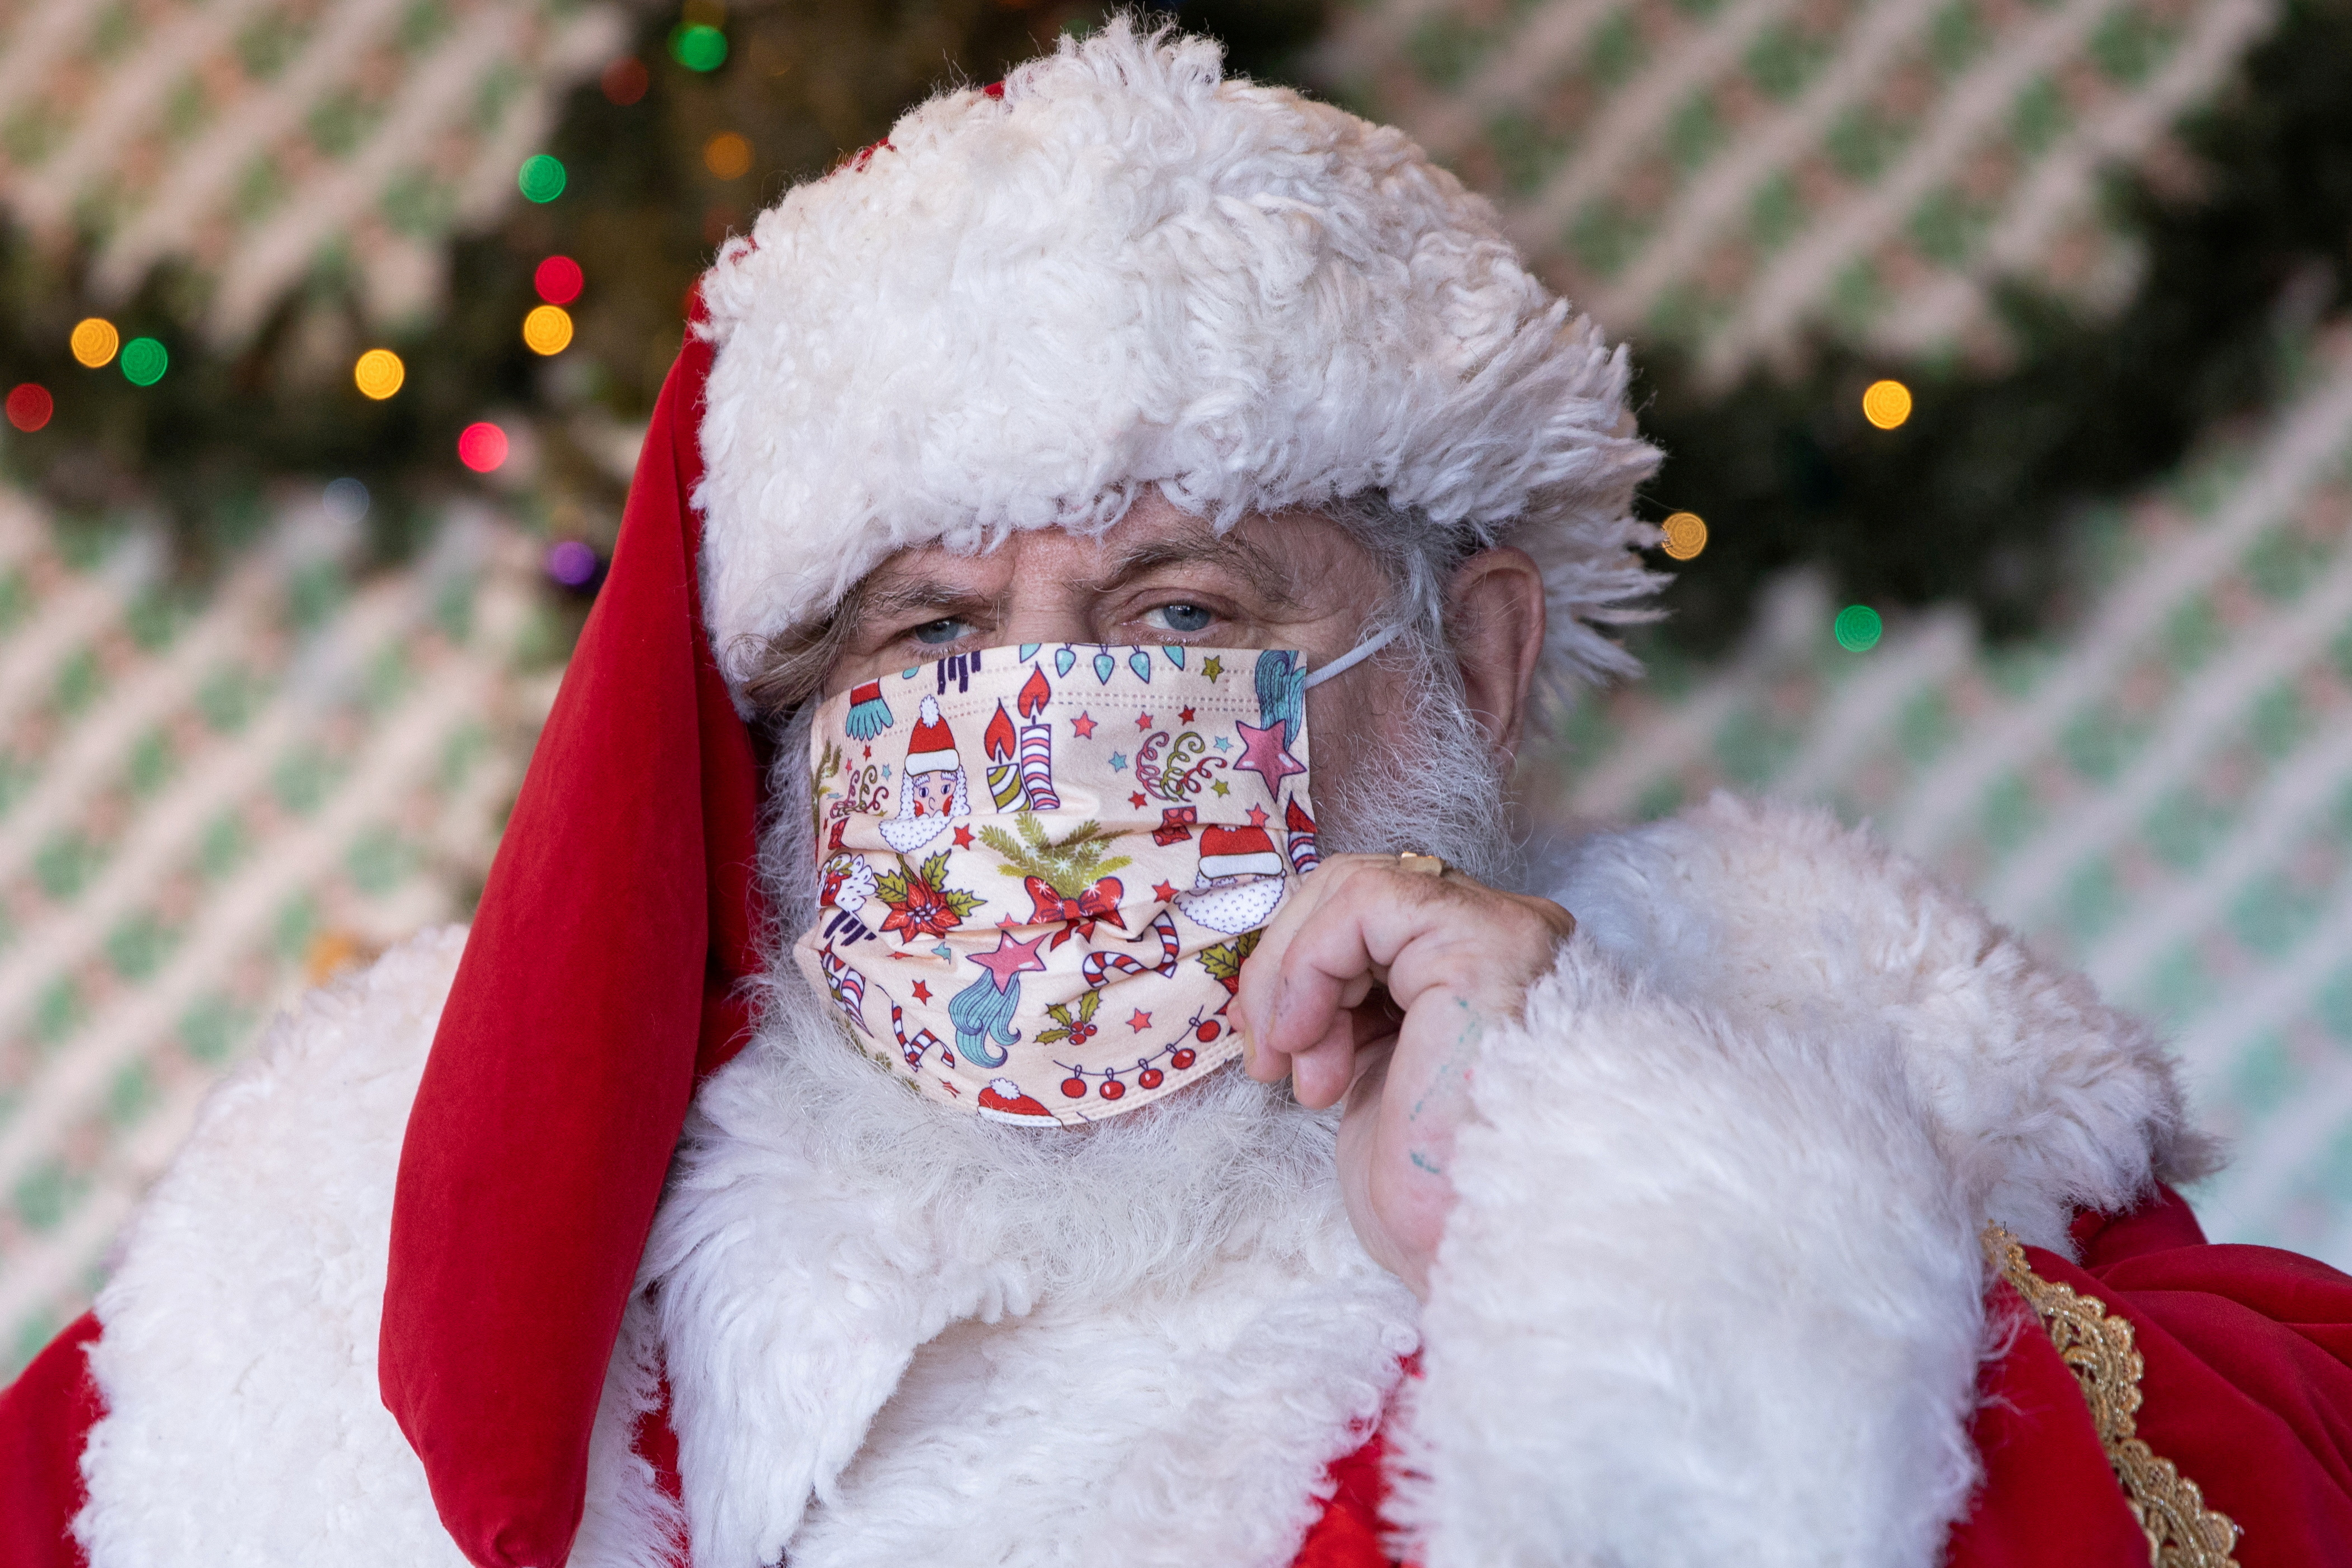 Dana Friedman, a trial lawyer who has spent 6 months of each year growing out his beard for his annual appearances as Santa Claus since 2001, adjusts his mask before greeting a child at the Bay Terrace Shopping Center in Queens as the global outbreak of the coronavirus disease (COVID-19) continues, in New York City, U.S., December 6, 2020. REUTERS/Caitlin Ochs/File Photo